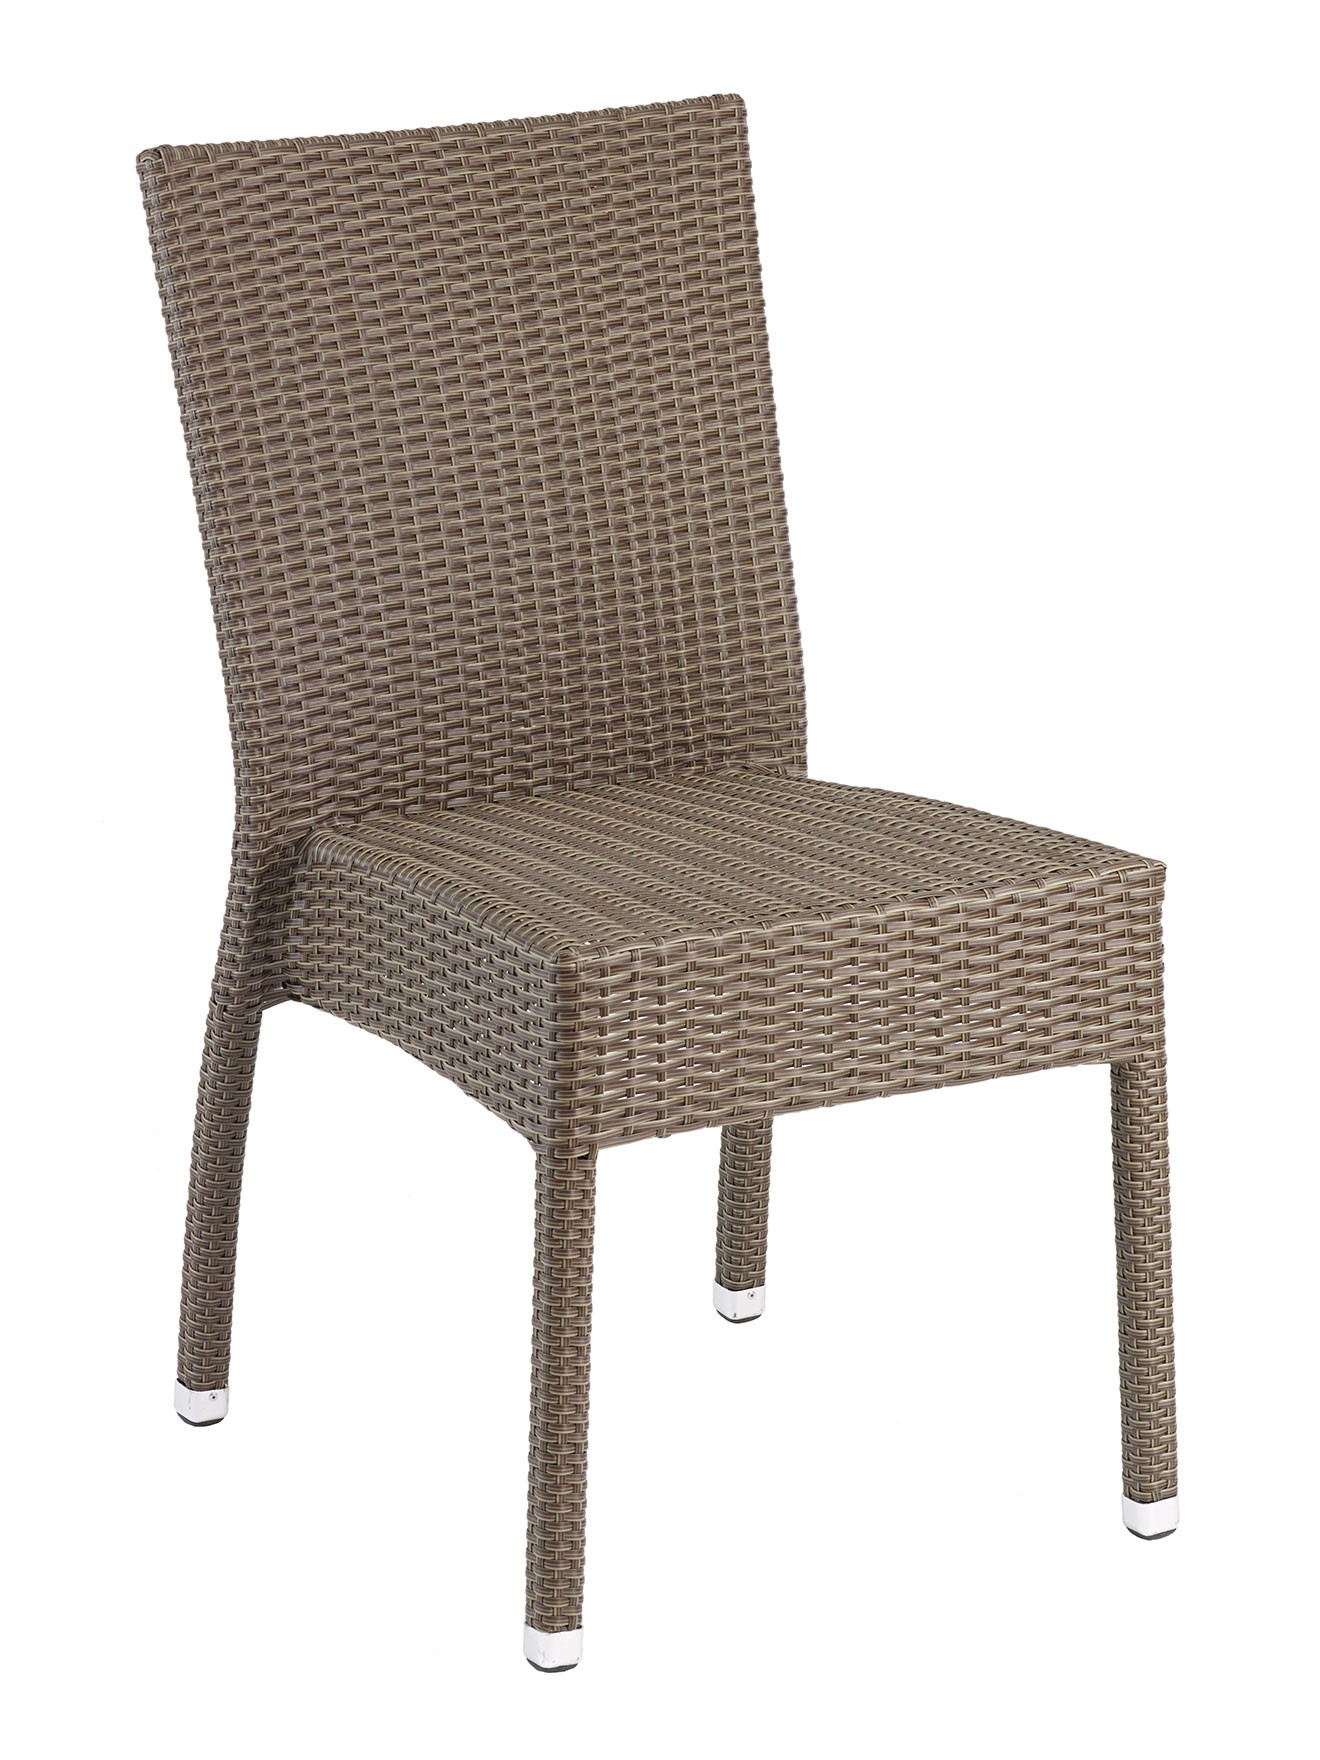 WIC-02 OUTDOOR CHAIR